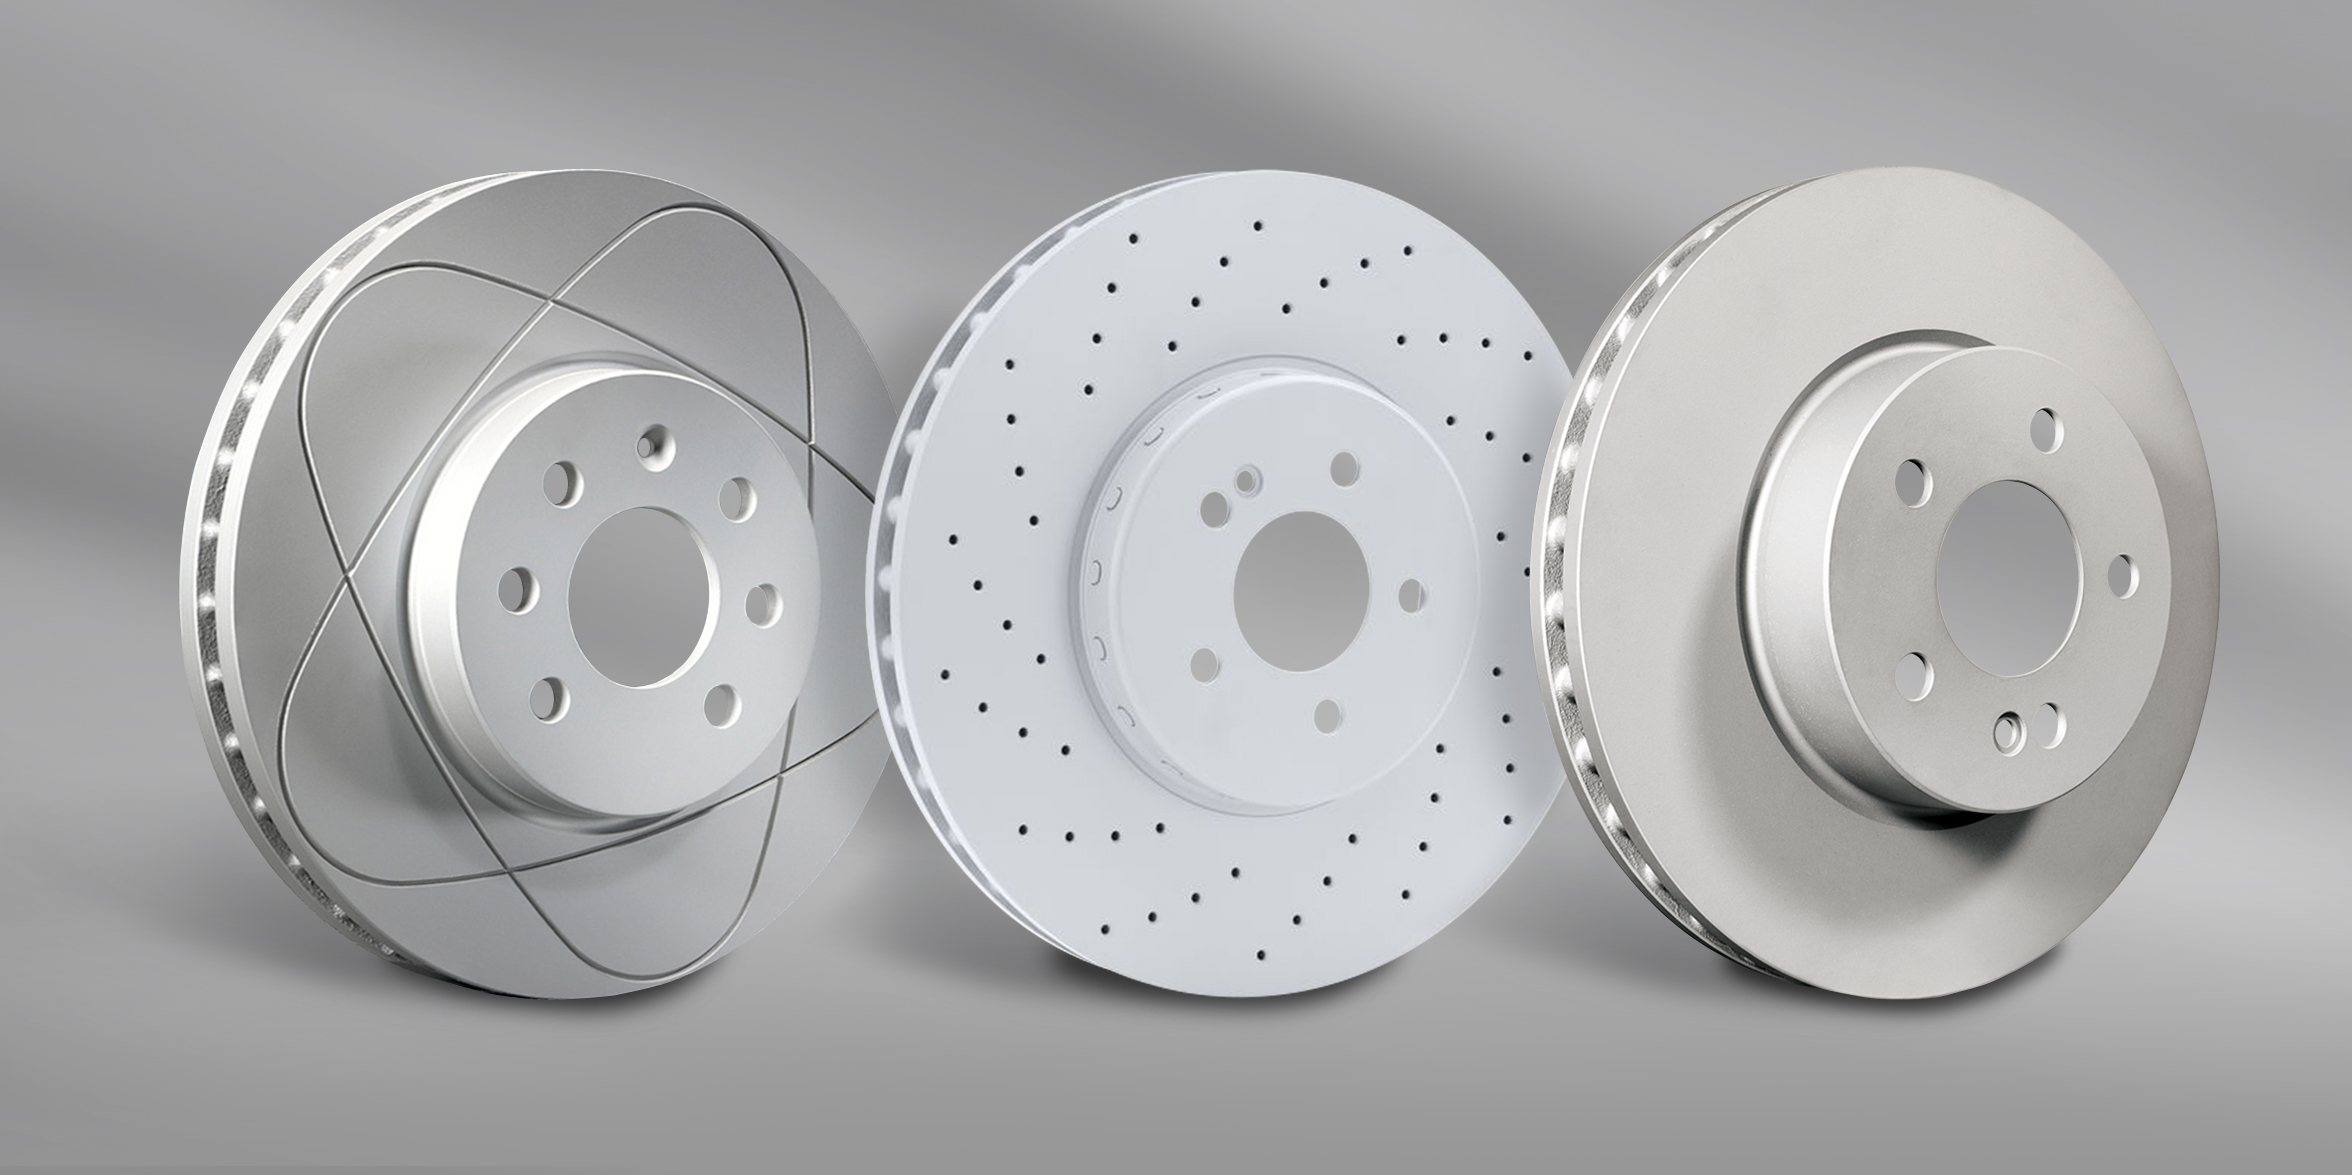 ATE Rotors Are Designed to Match Original Brake Requirements